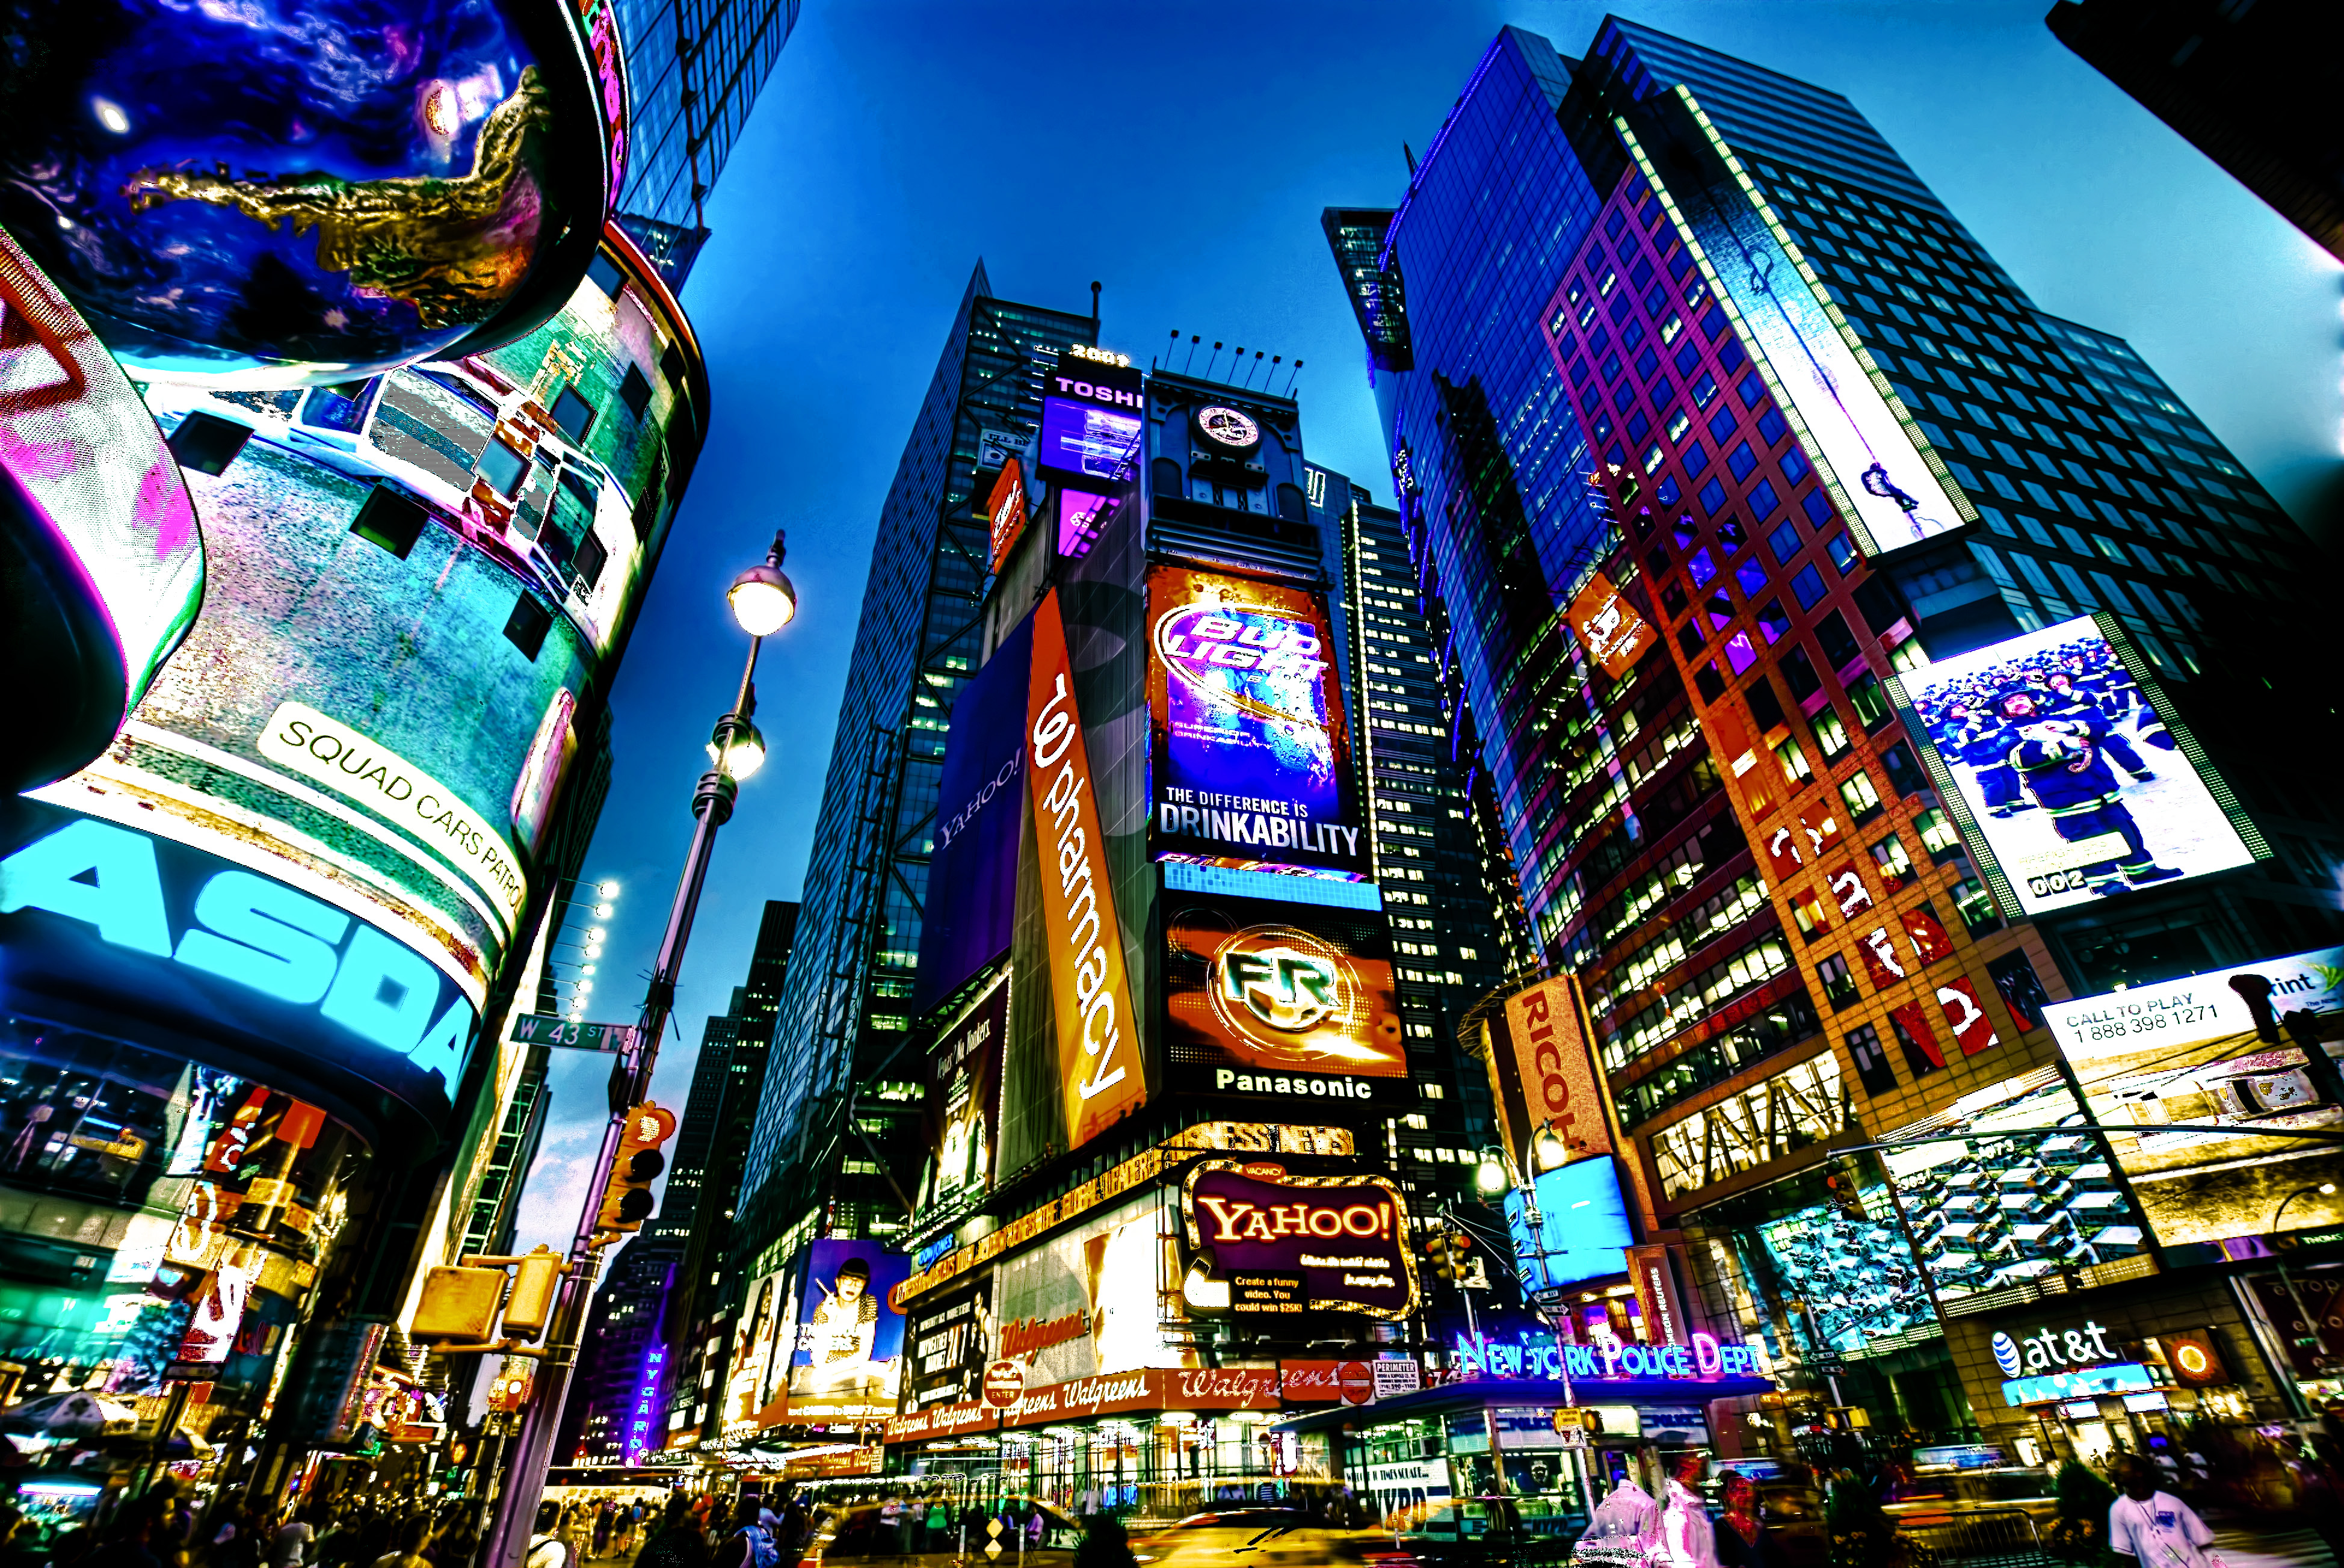 Square new york usa city cities neon lights g wallpaper background 3896x2606